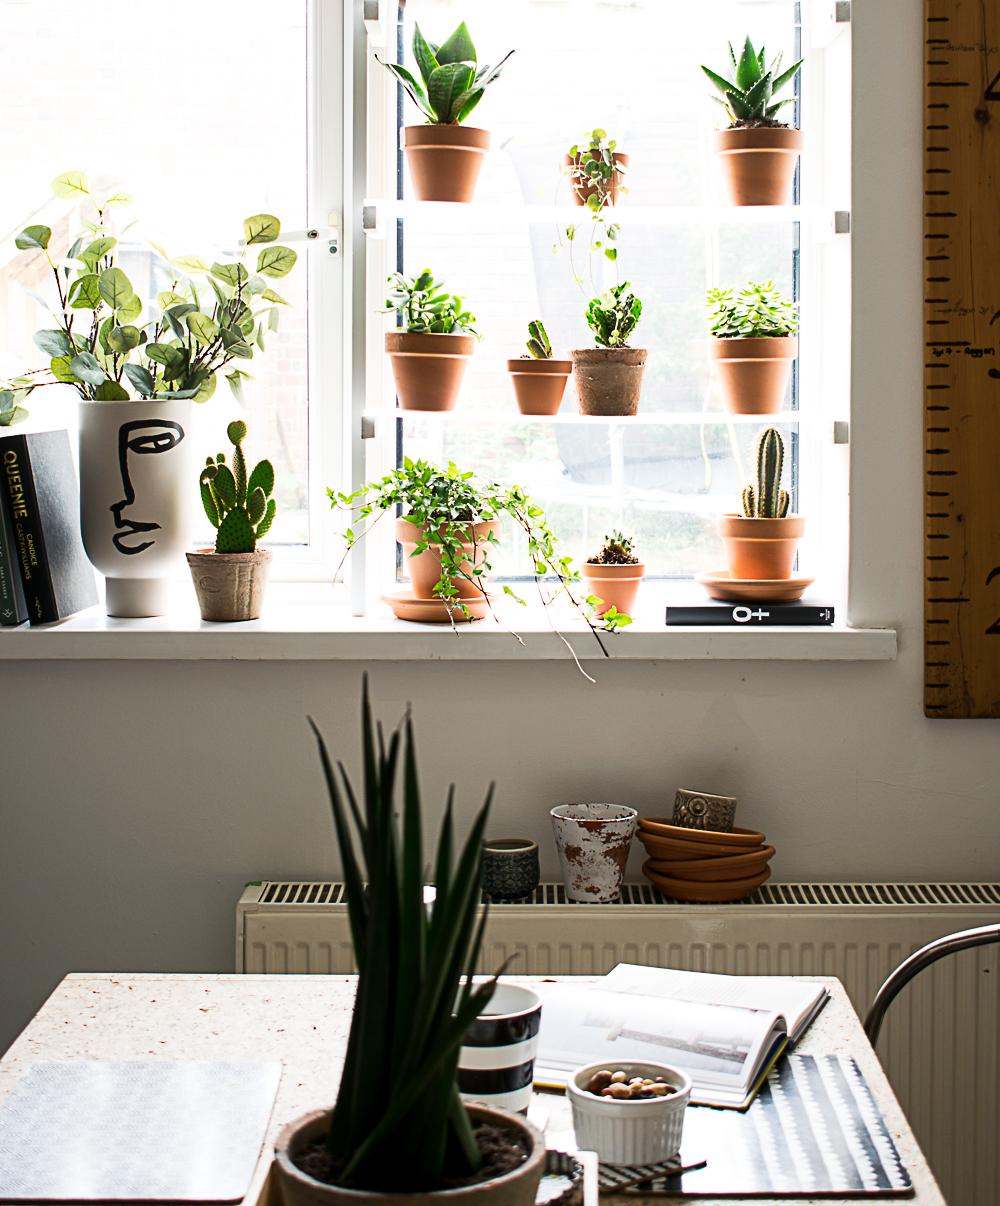 Vertical view of the plant shelves in the window. Cork board table seen